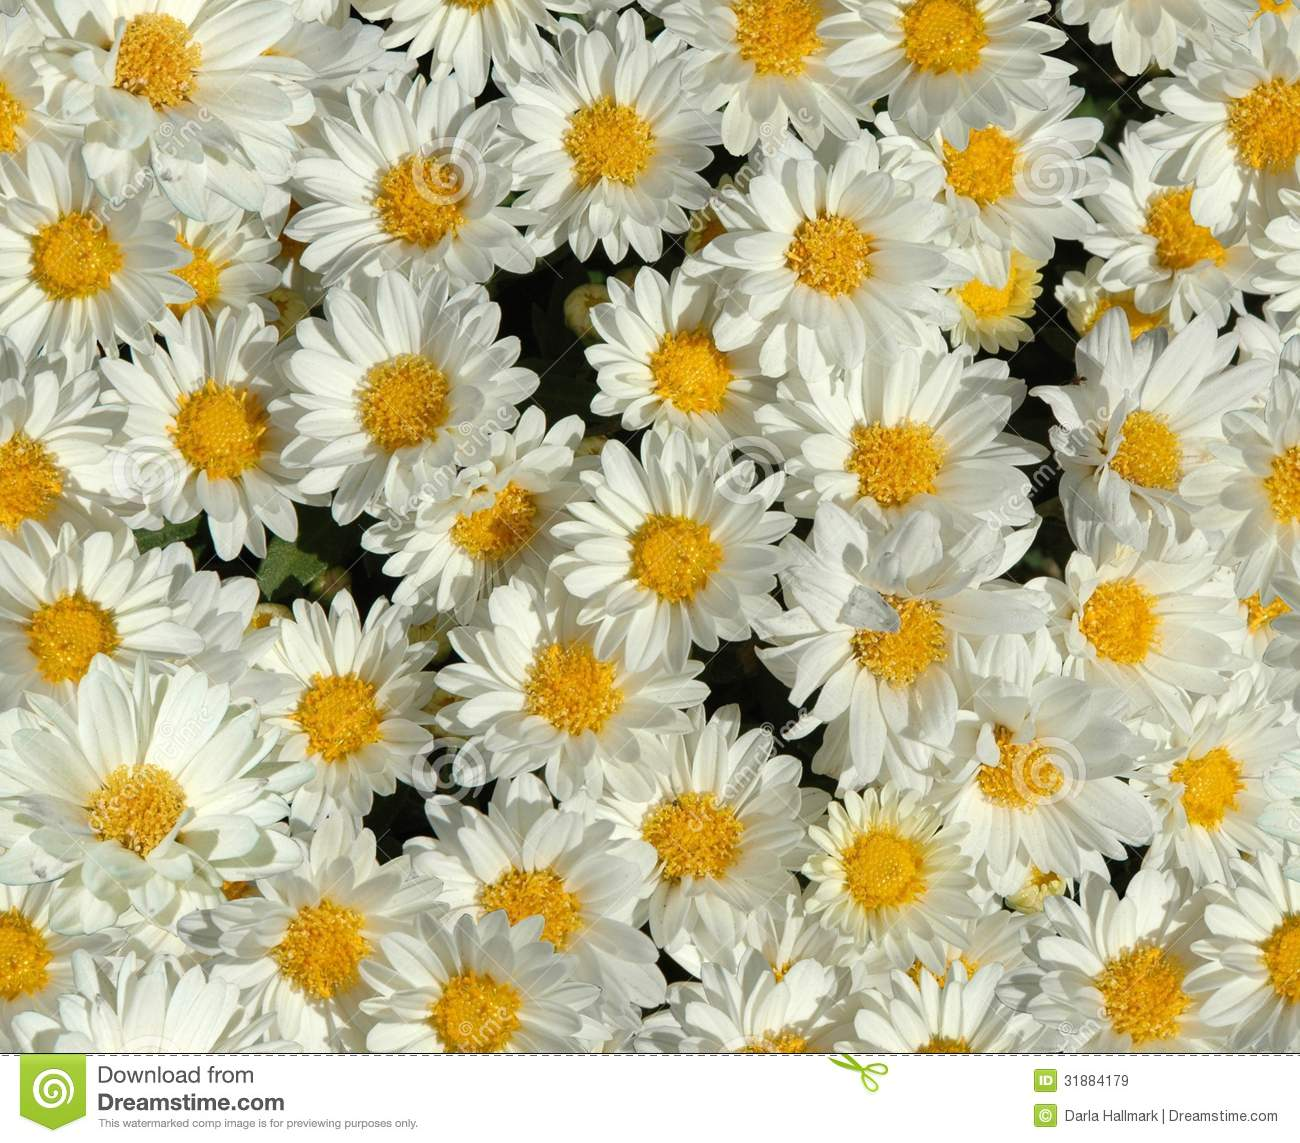 daisies wallpaper royalty free stock images   image 31884179